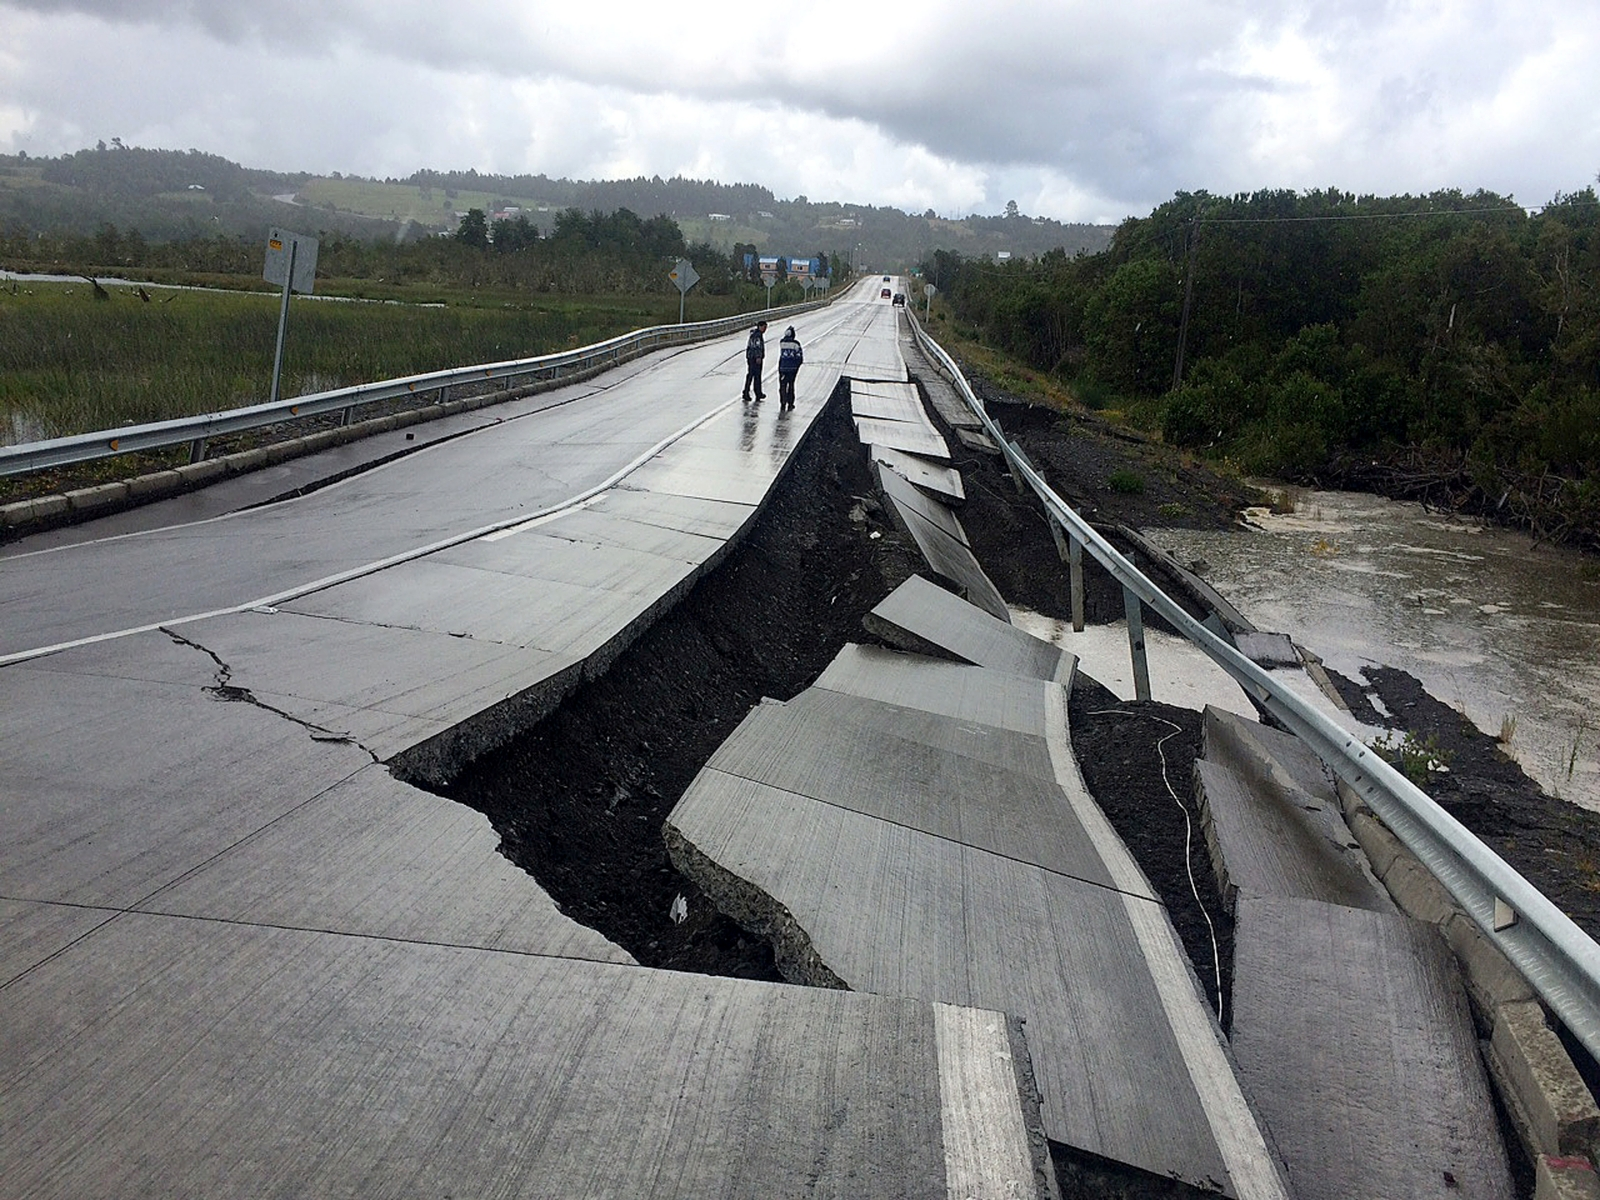 Chile Earthquake damage 25 December